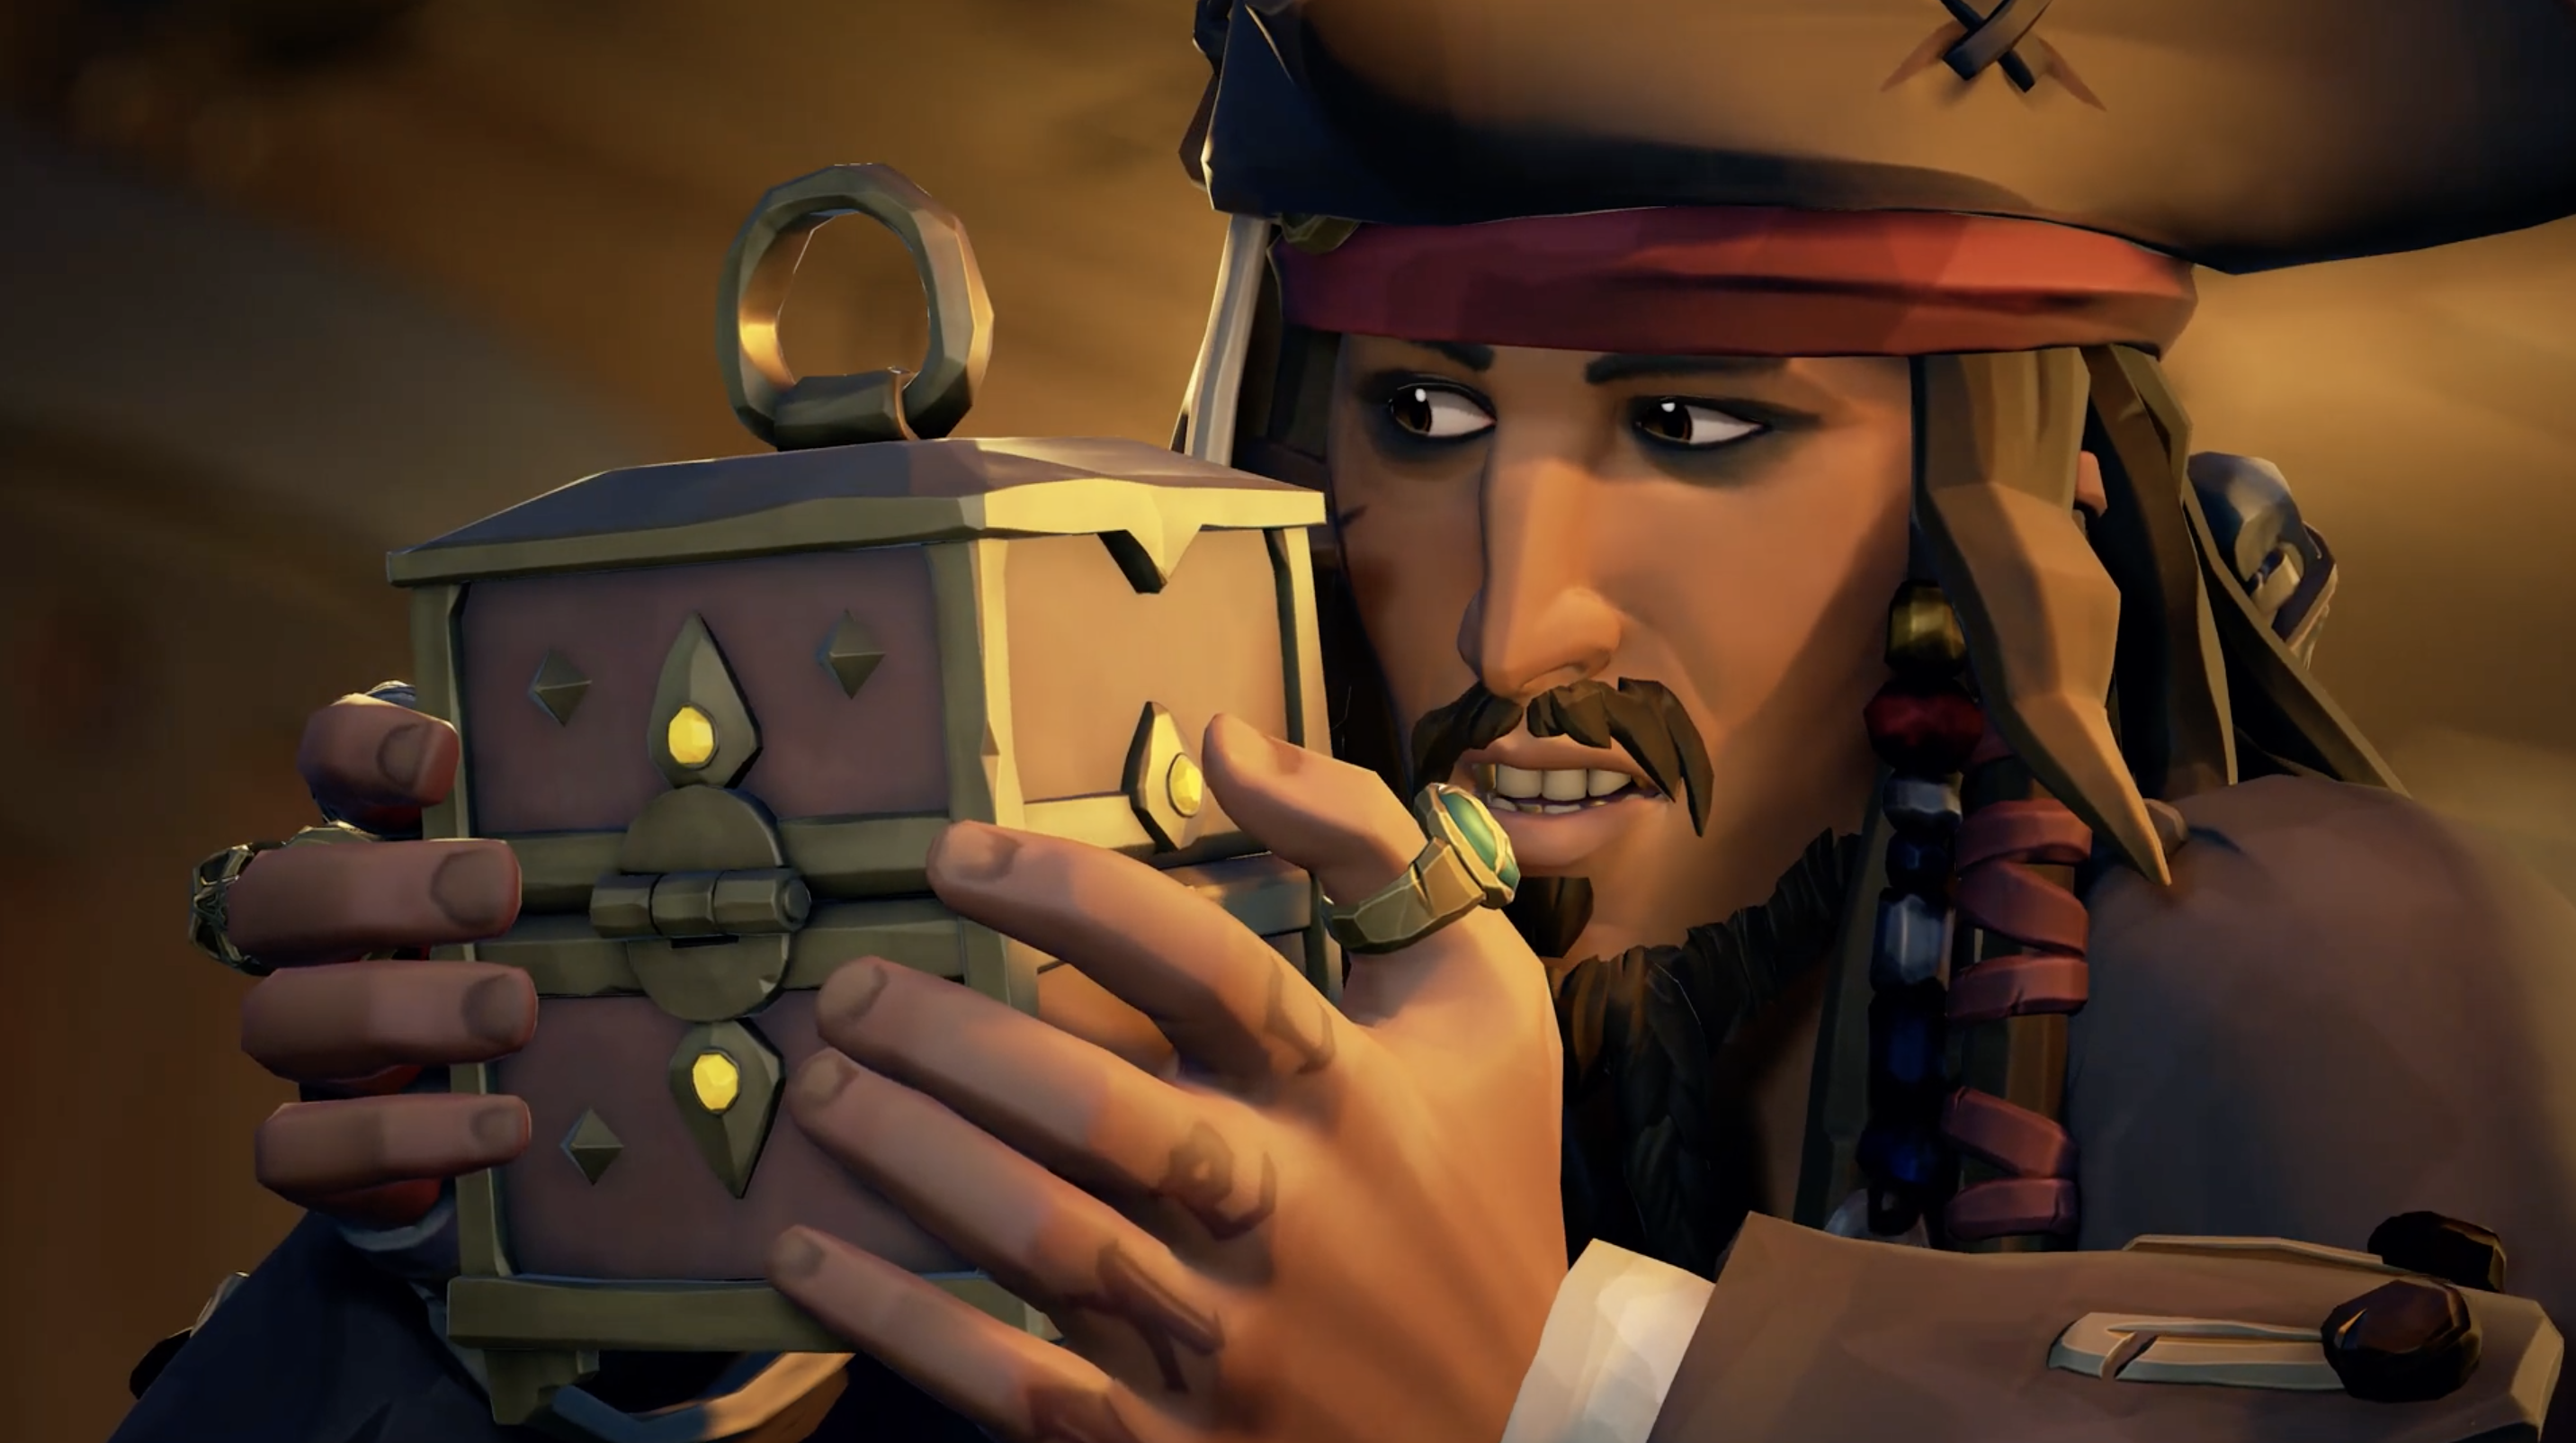 E3 2021: Sea of Thieves Has Pirates Now... of the Caribbean